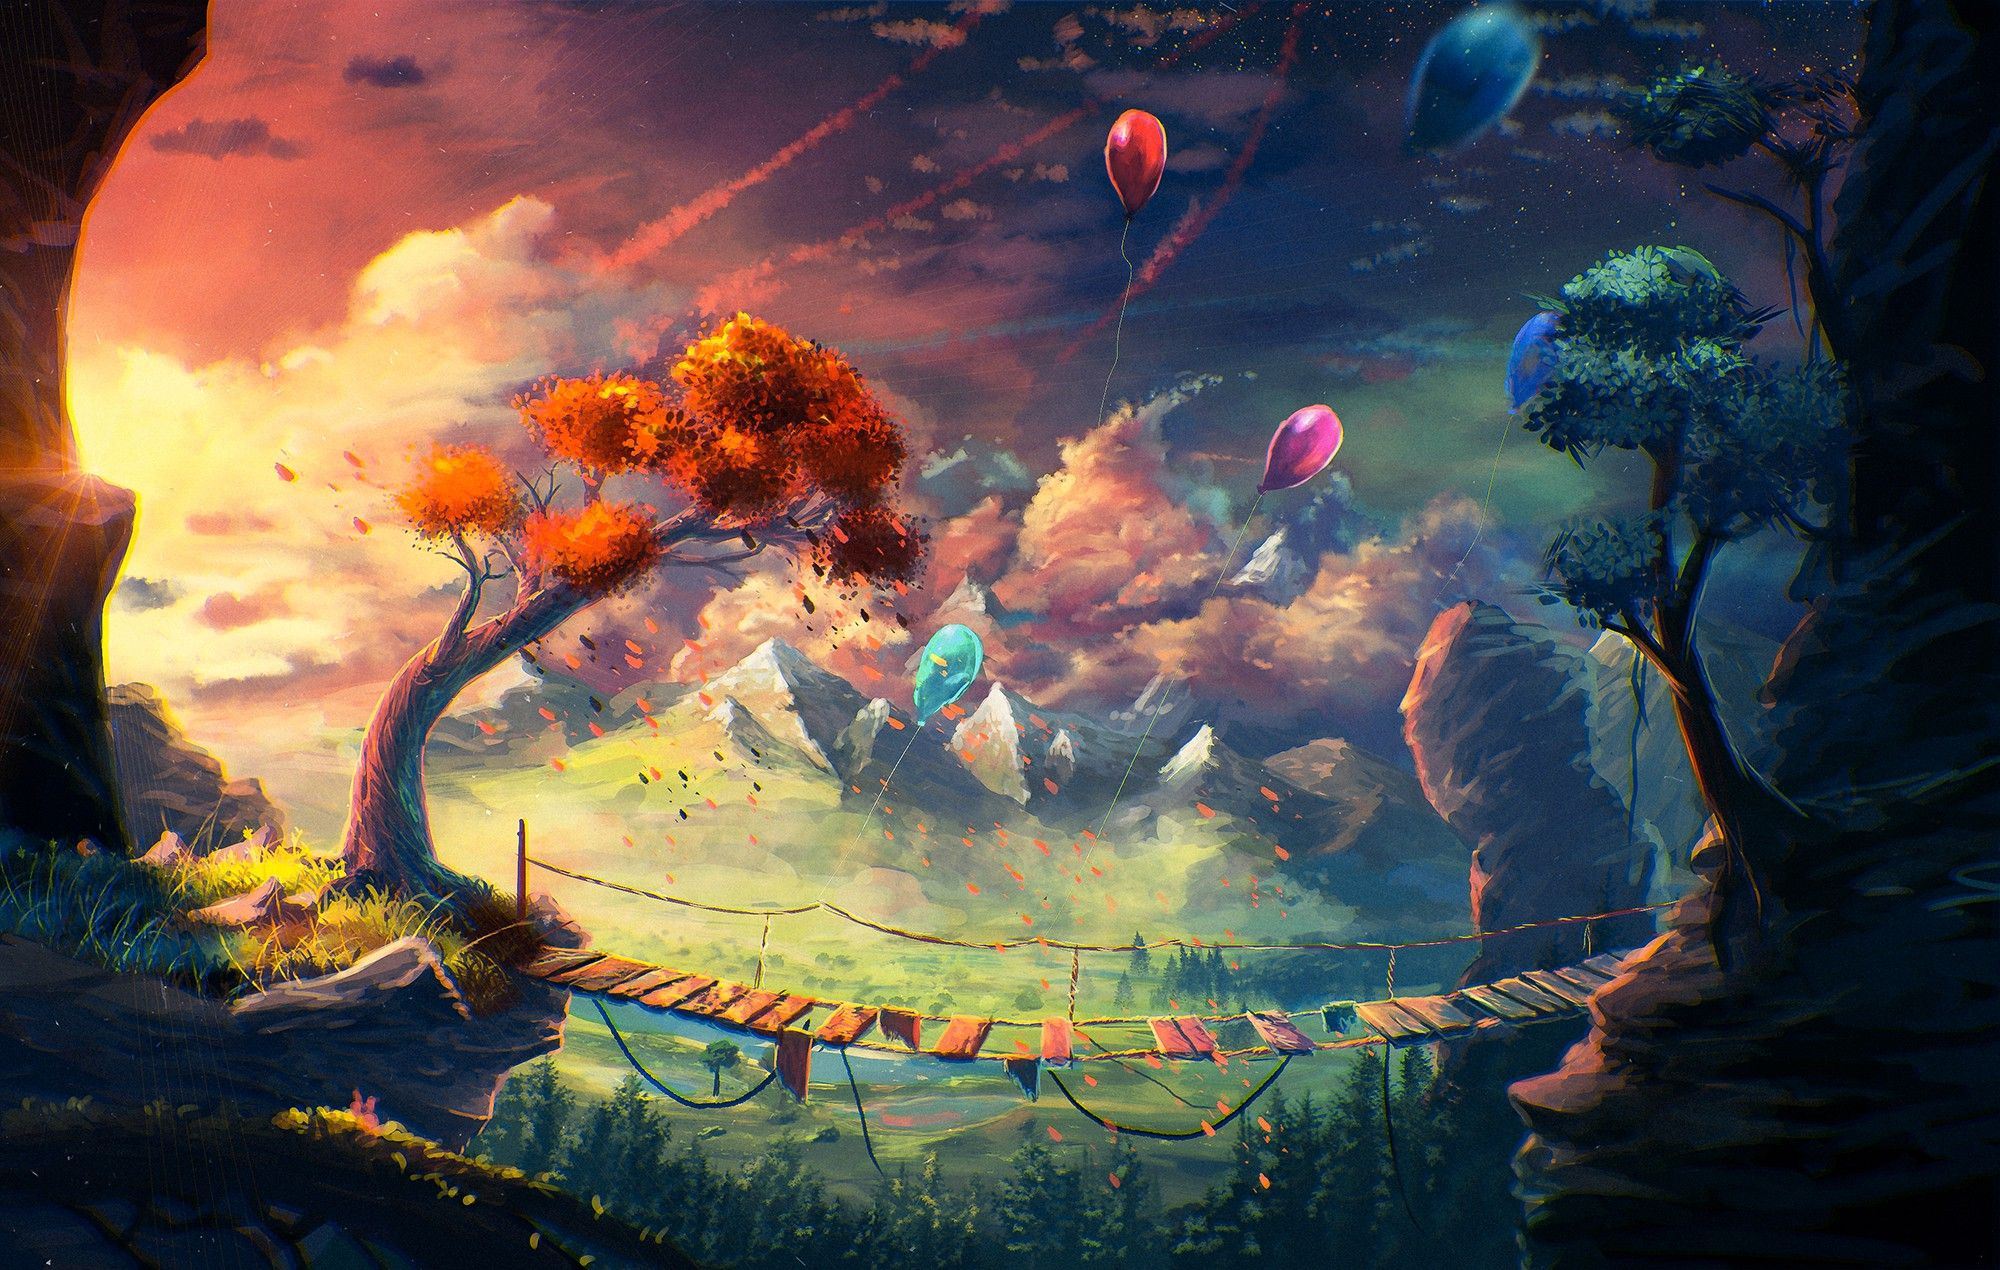 Download Hd Wallpapers Of 86915 Anime Artwork Fantasy Art Mountain Bridge Balloons Sylar Clouds Free Down Sky Painting Colorful Landscape Anime Artwork Anime art hd wallpapers